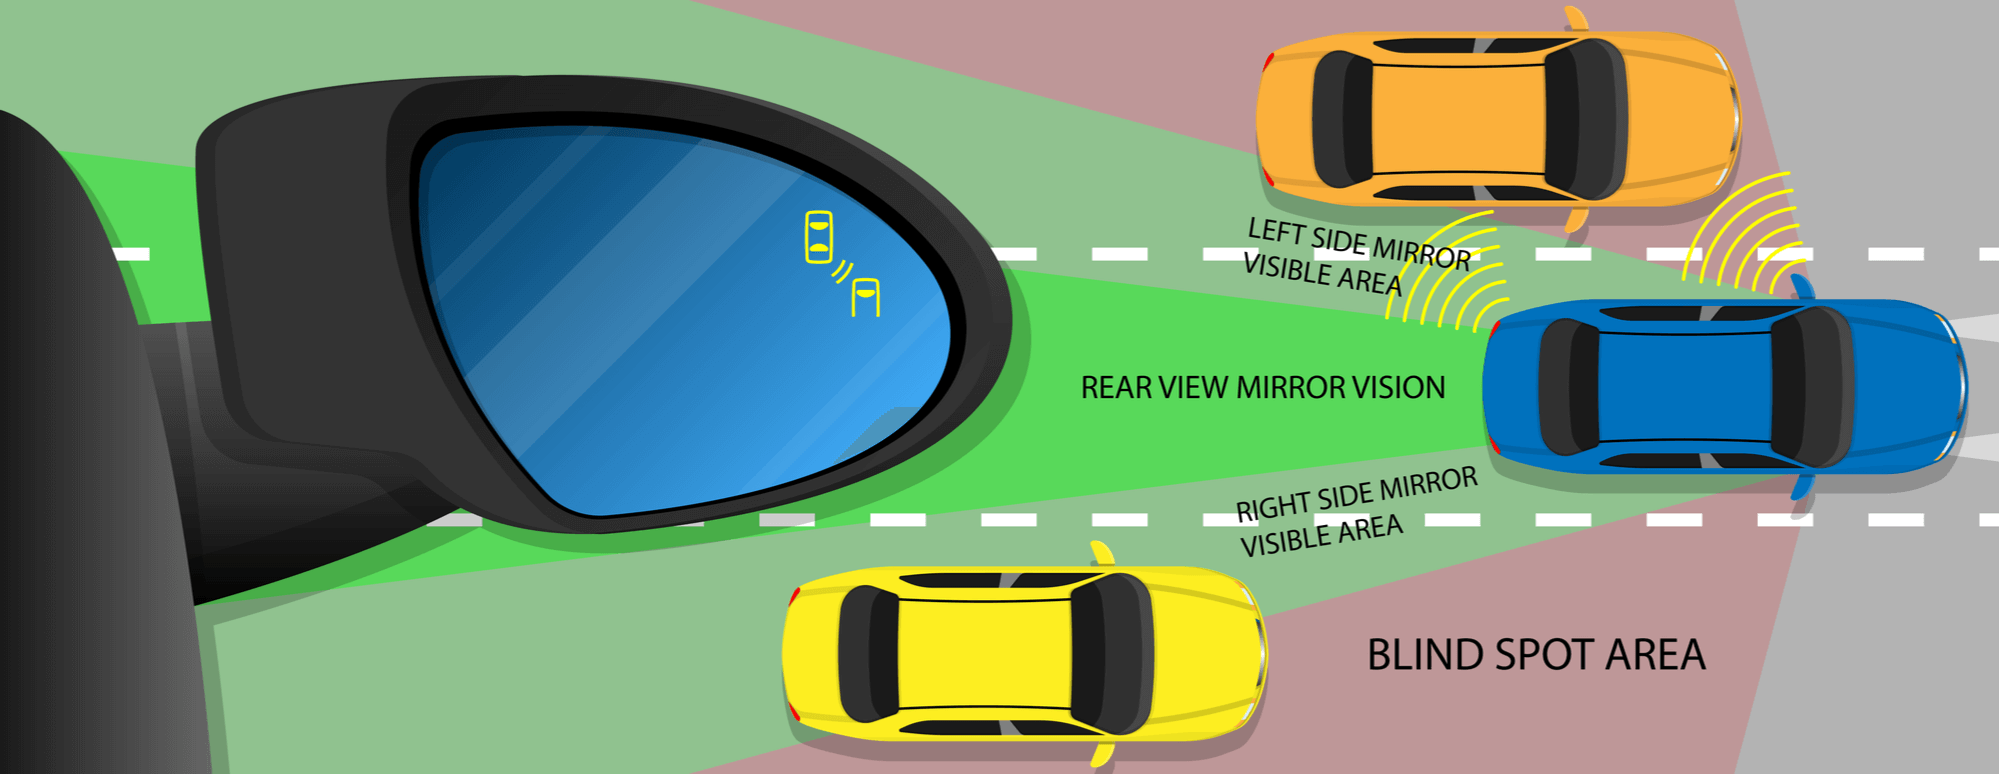 Visual of how a car's blind spot indicator works